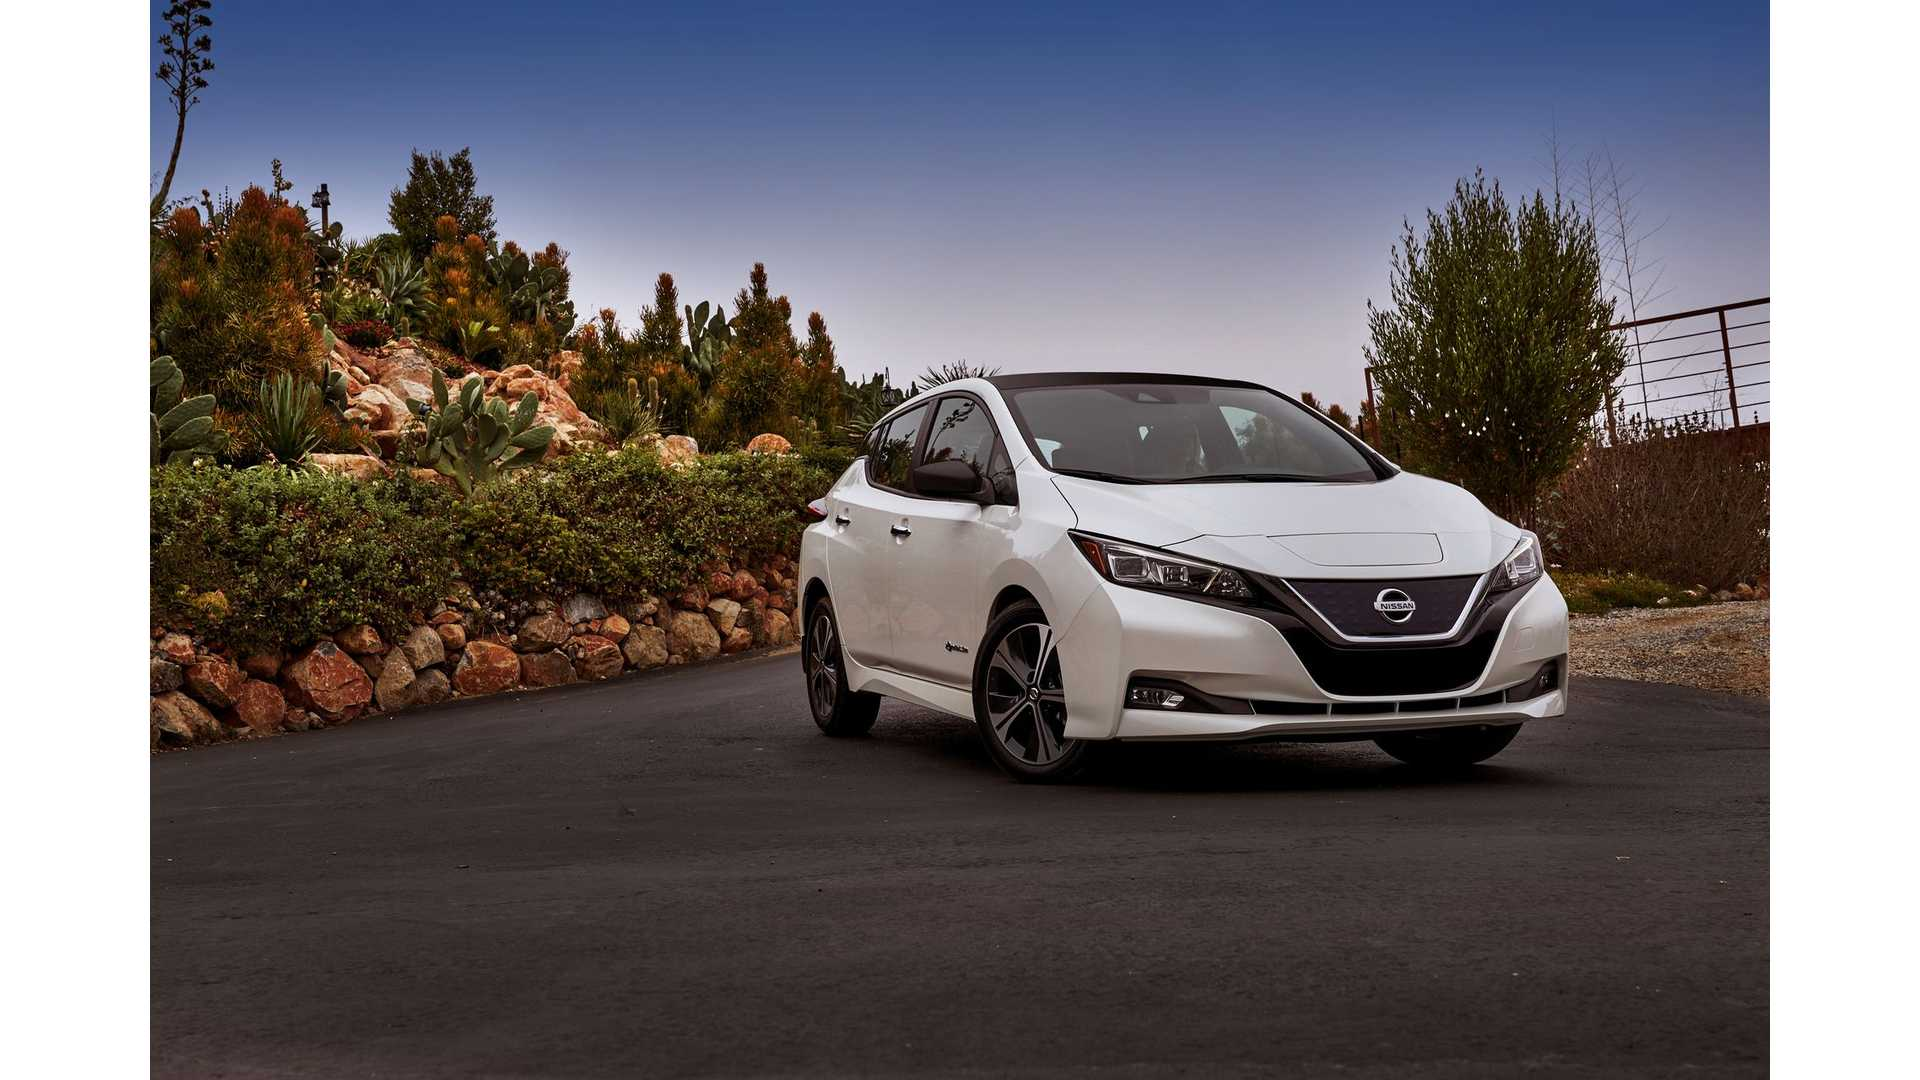 42 Concept of Nissan Leaf 2019 60 Kwh Specs with Nissan Leaf 2019 60 Kwh